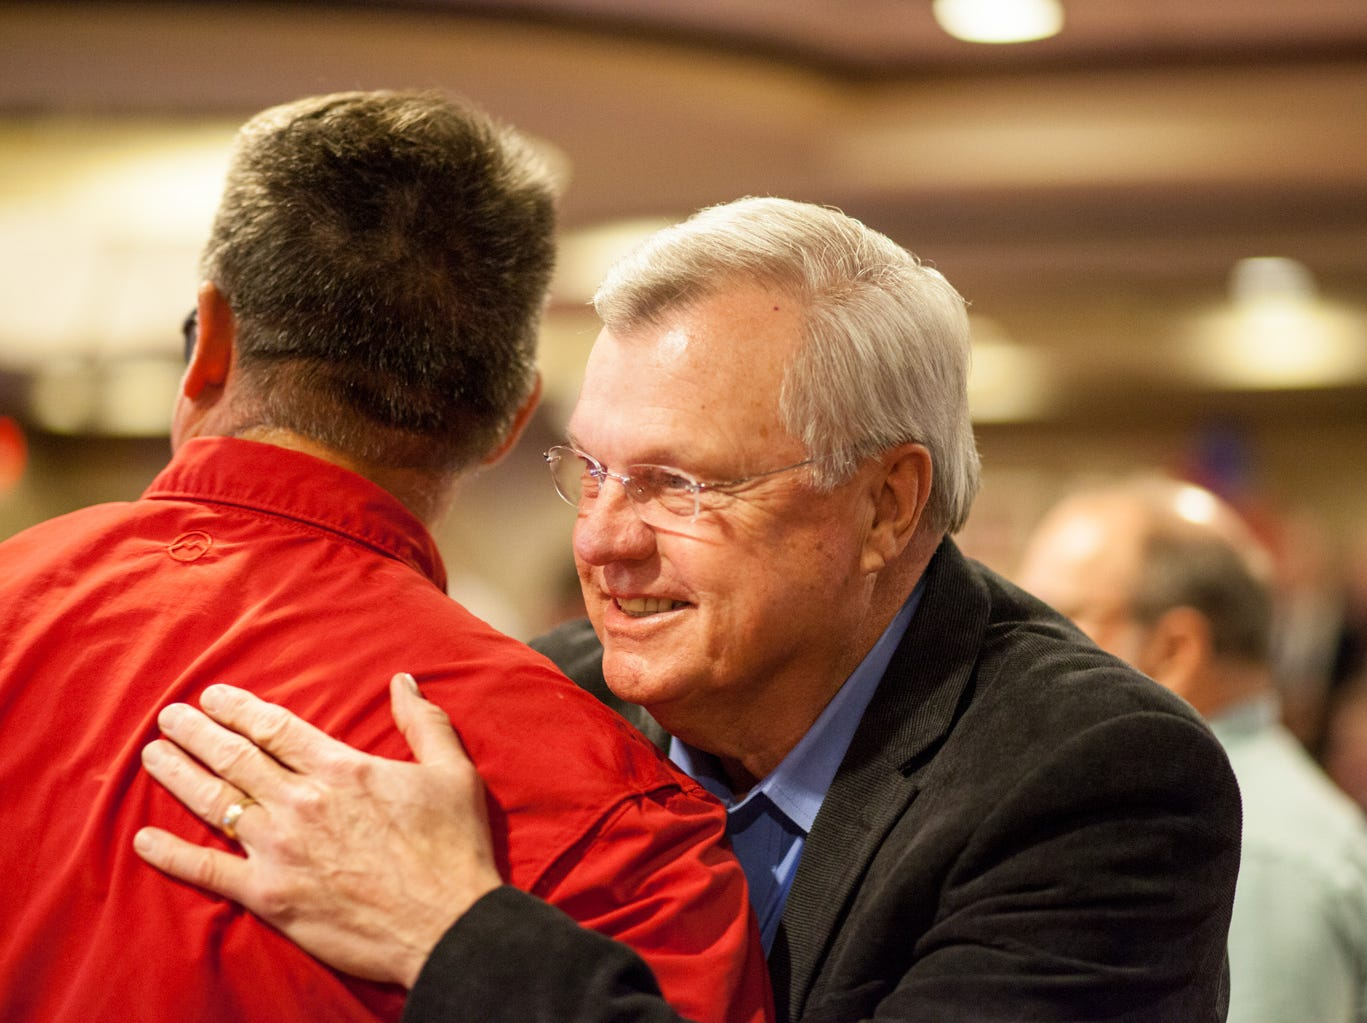 State House District 68 Candidate Curtis Johnson hugs Jay Reedy at the watch party on Tuesday.